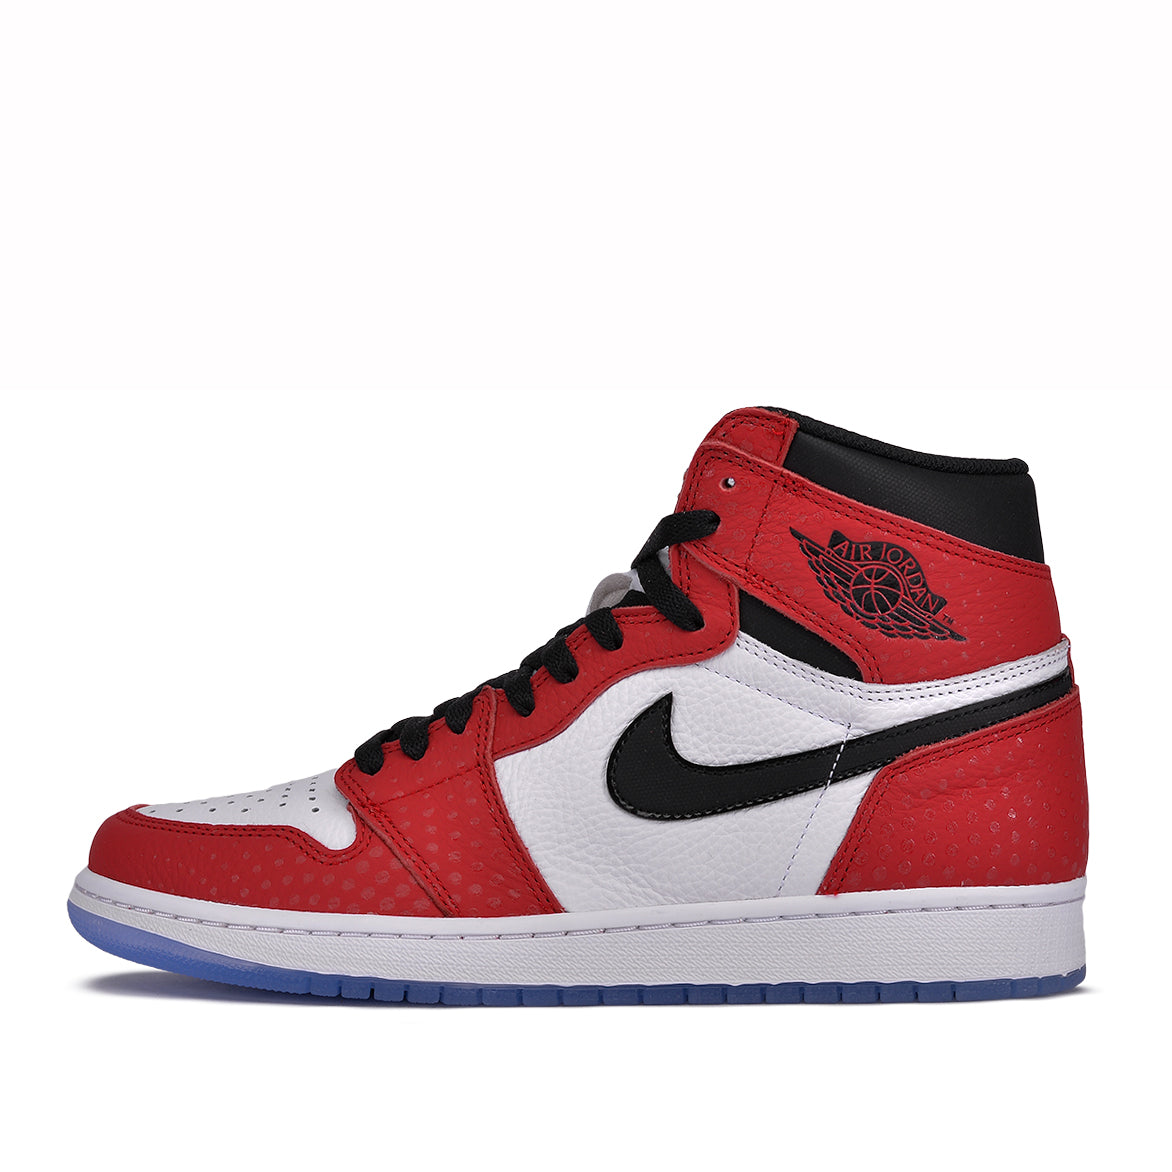 "AIR JORDAN 1 RETRO HIGH OG ""ORIGIN STORY"""